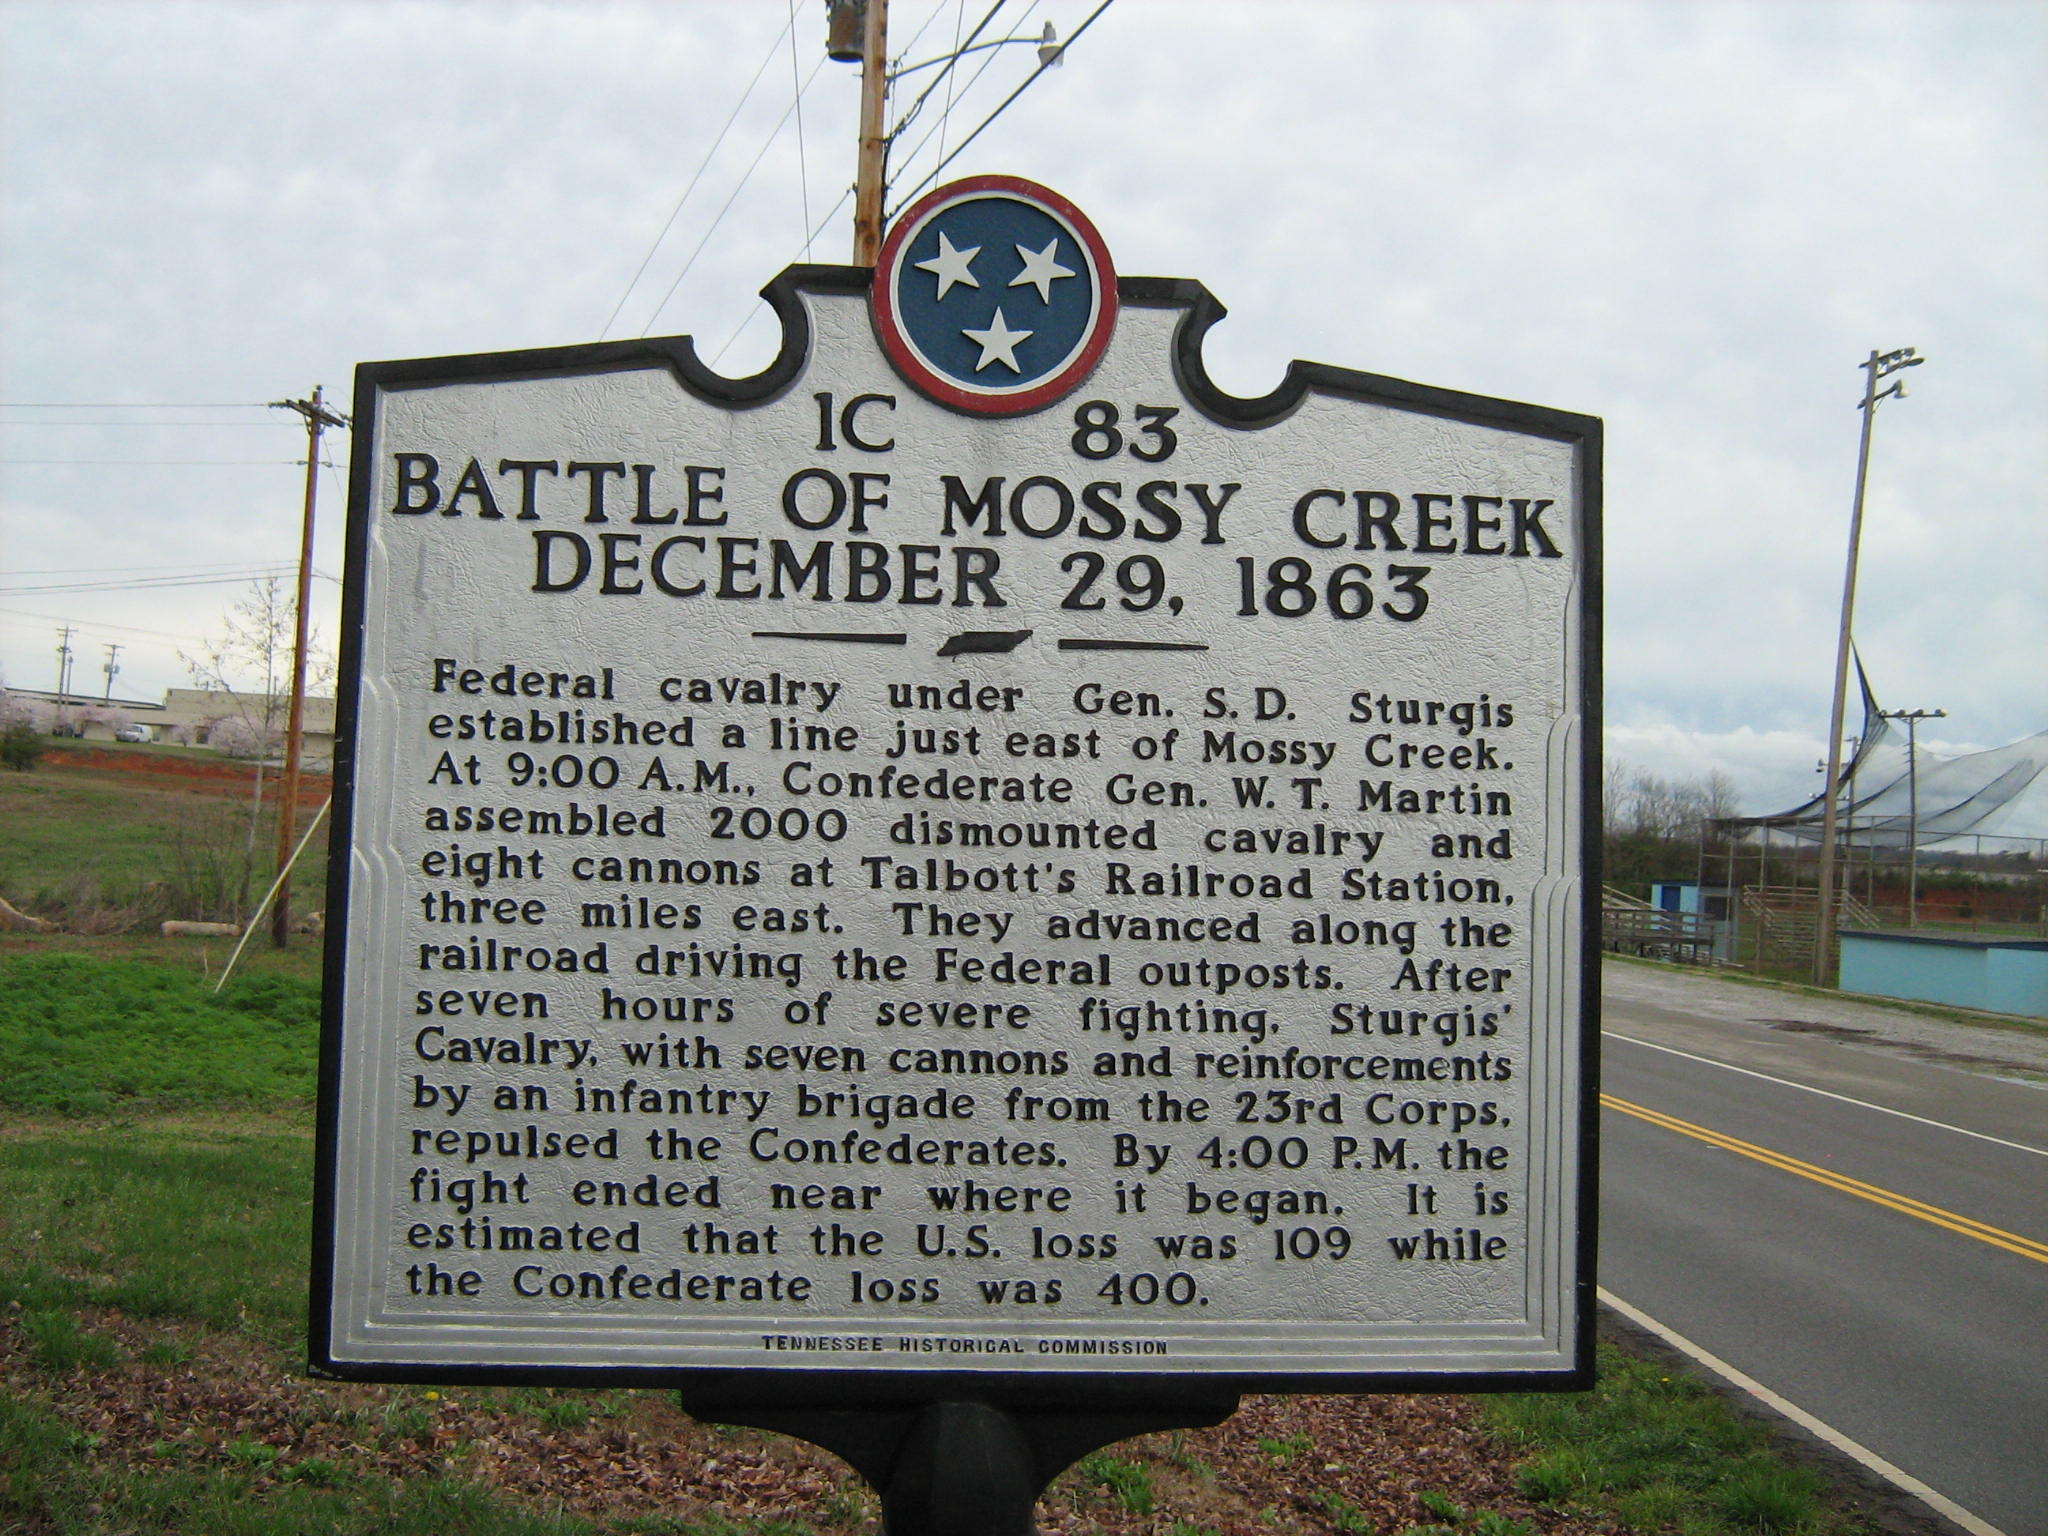 Battle Of Mossy Creek 1c83